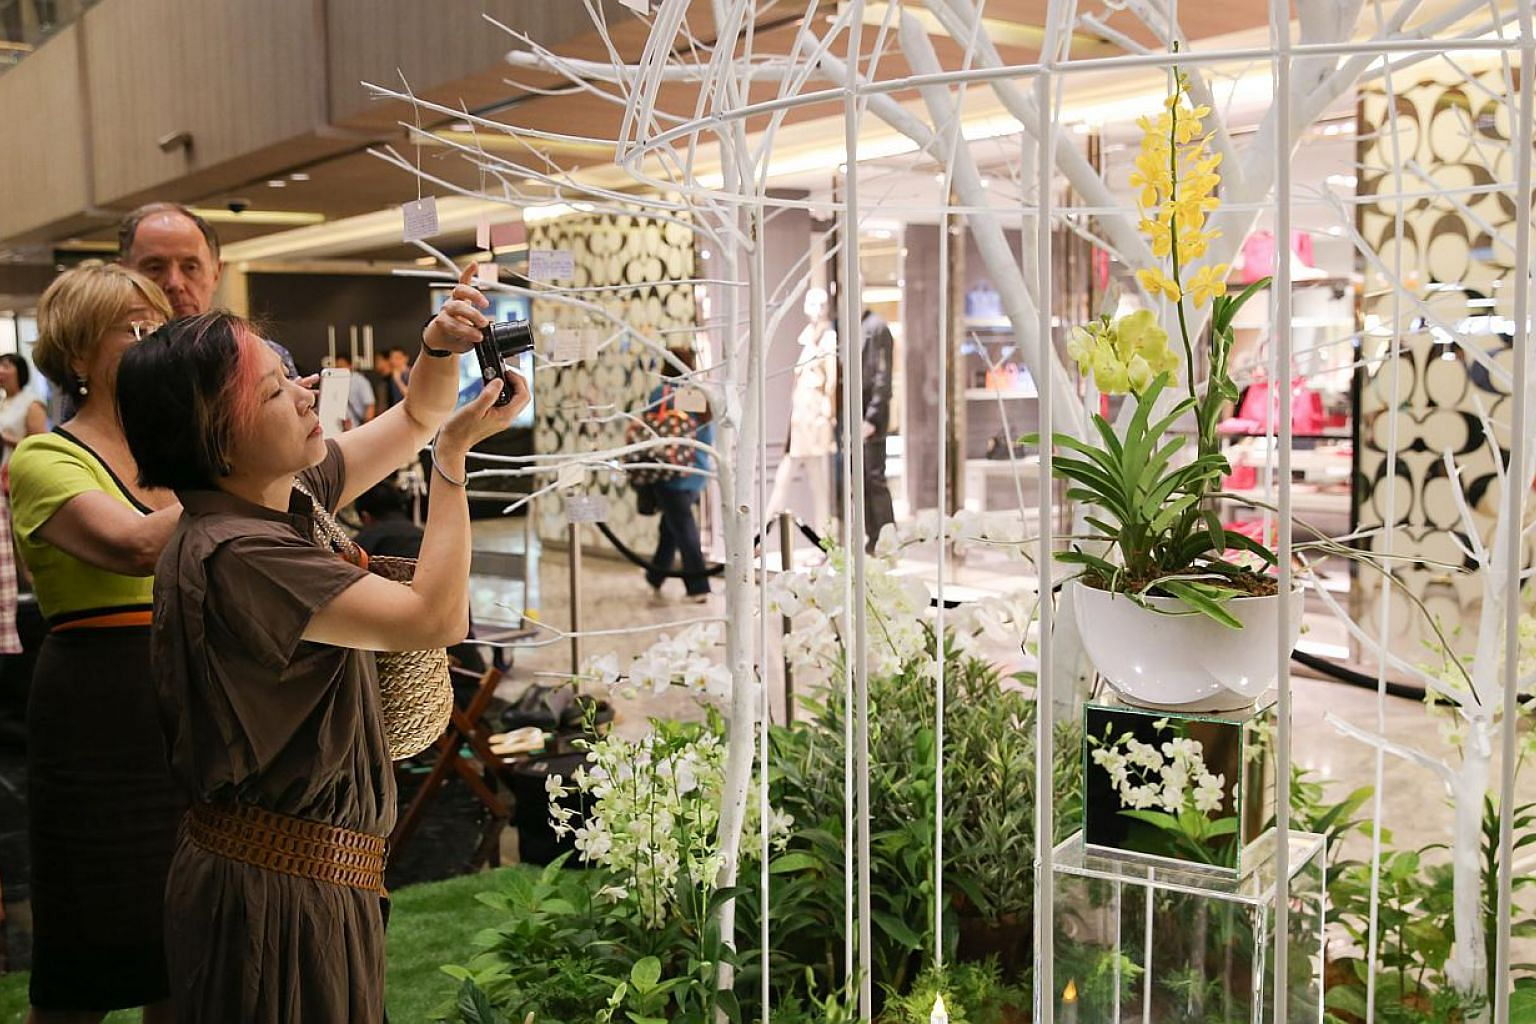 The free exhibition features displays from 38 Chapter members, famous floral designers and Ikebana artists from Singapore. It is open from 10am to 9pm.-- ST PHOTO: ONG WEE JIN